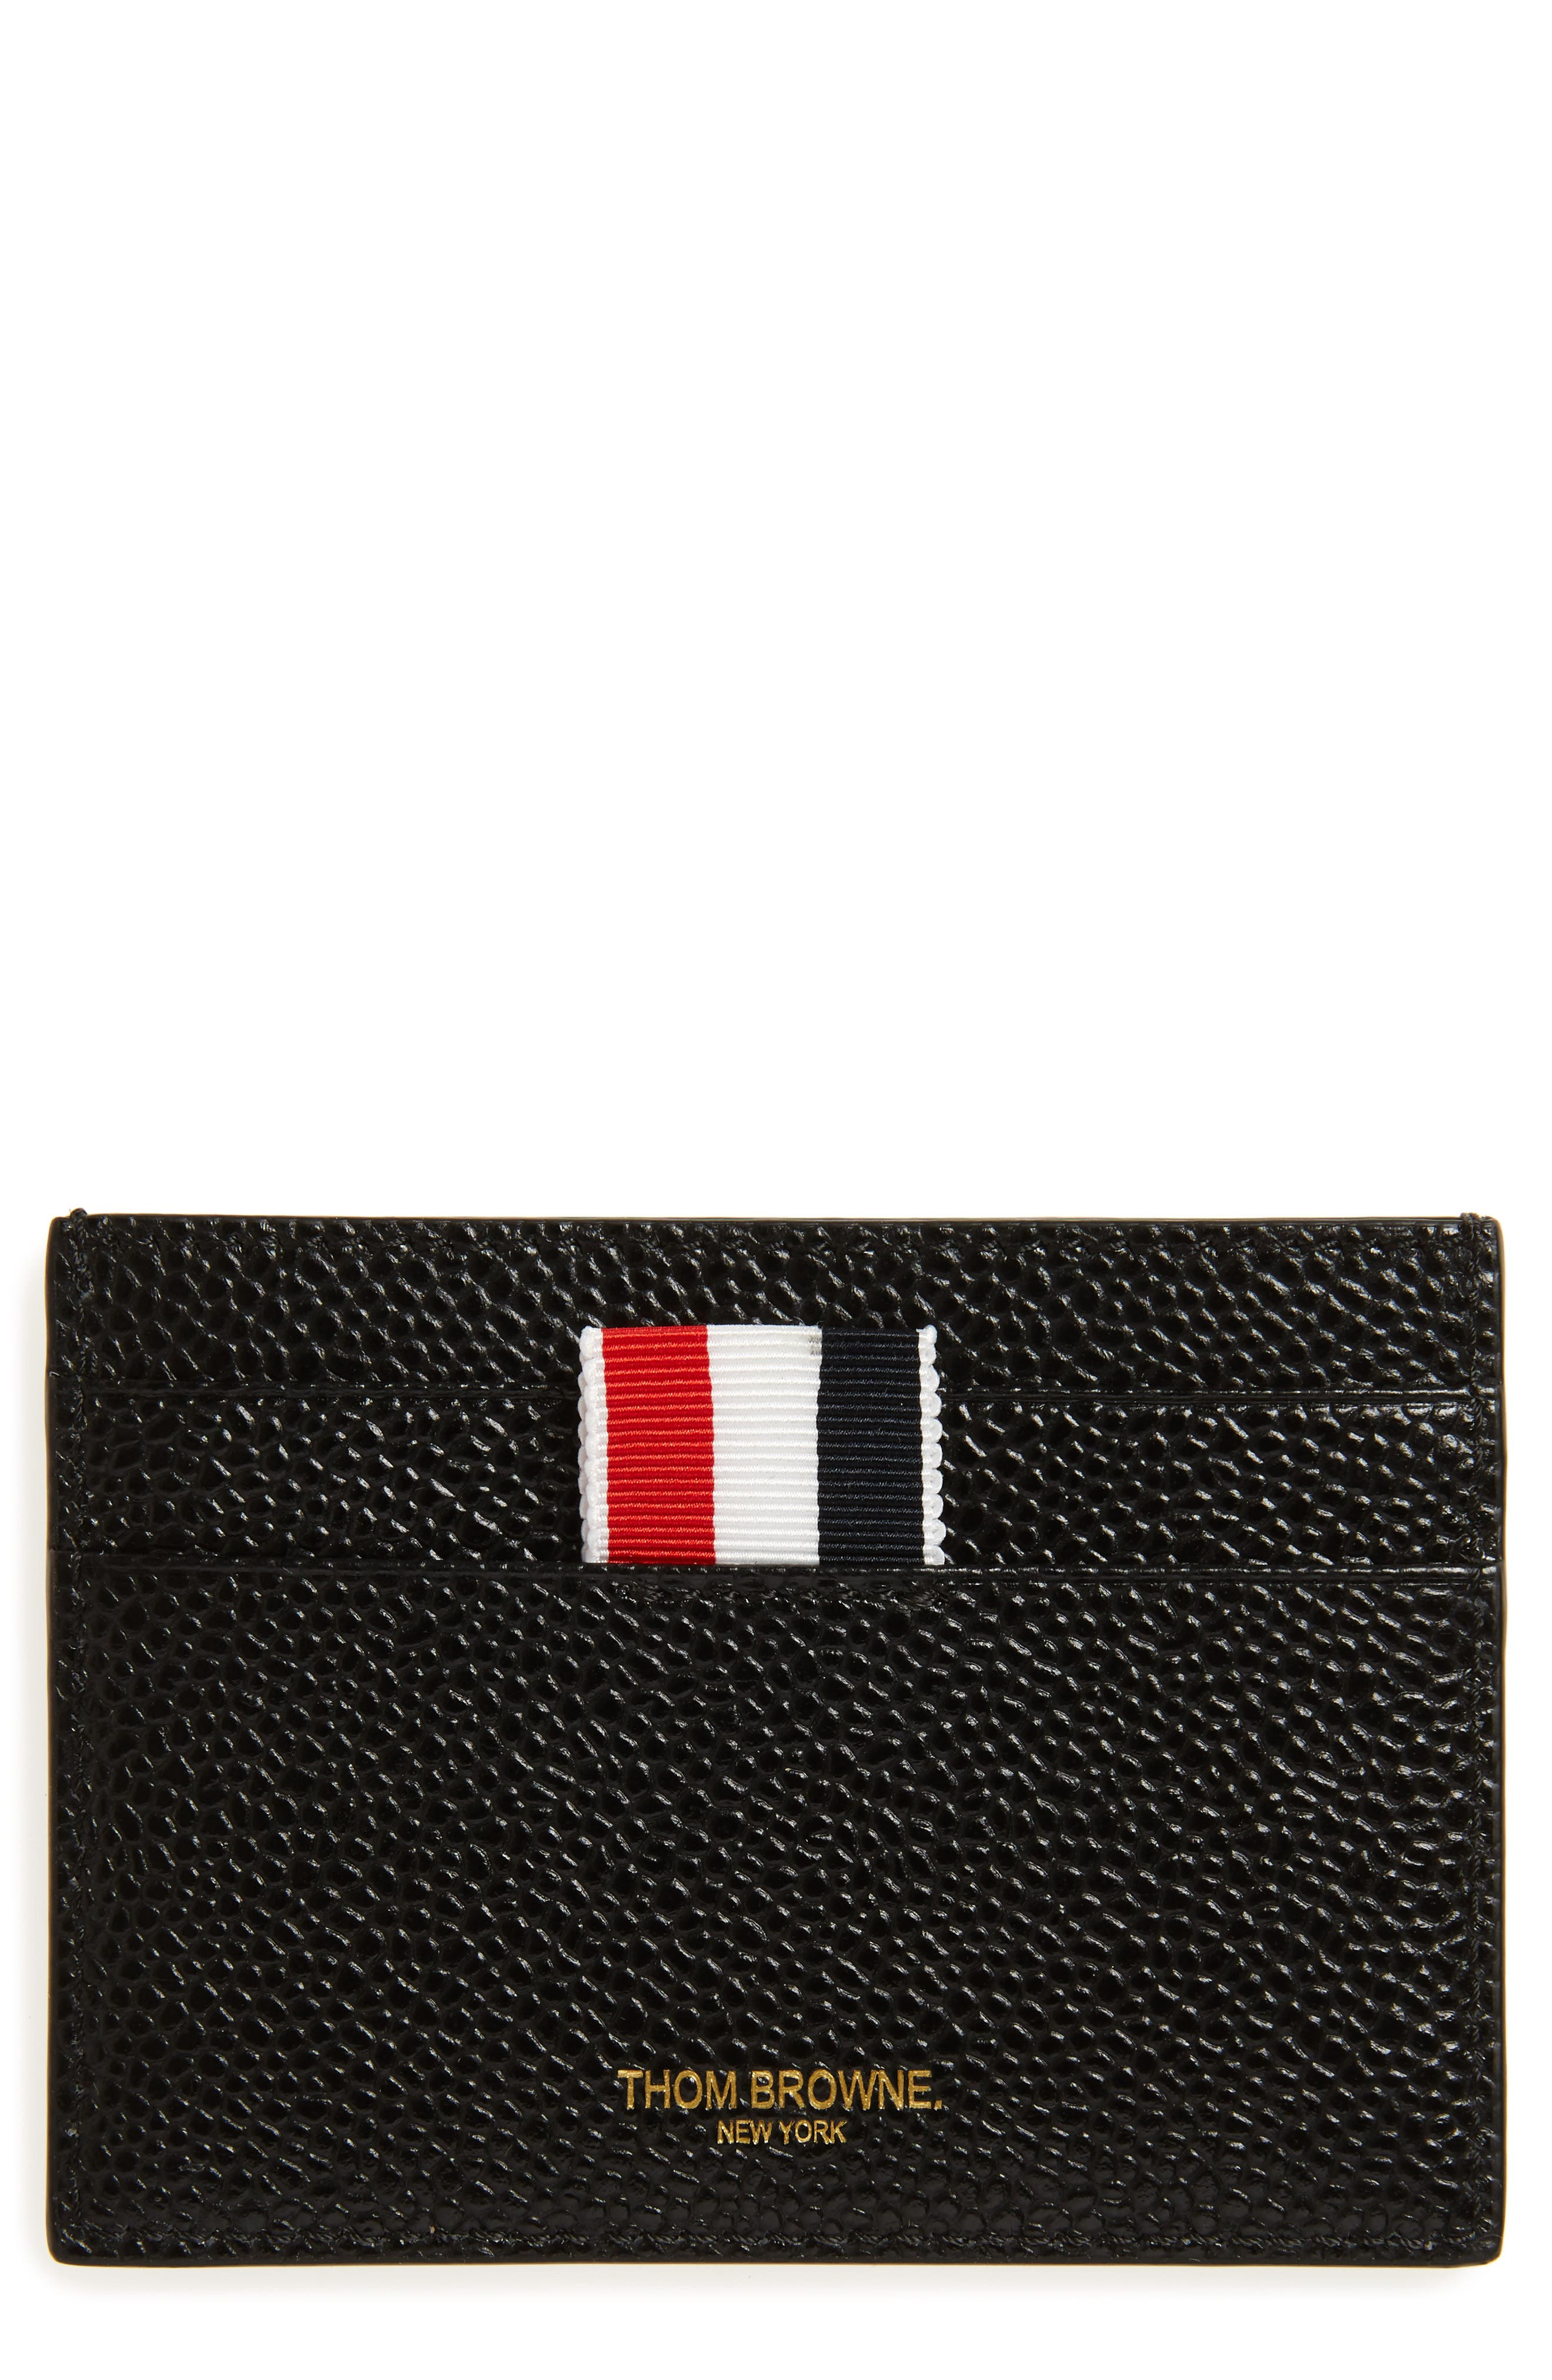 Main Image - Thom Browne Patent Leather Card Case